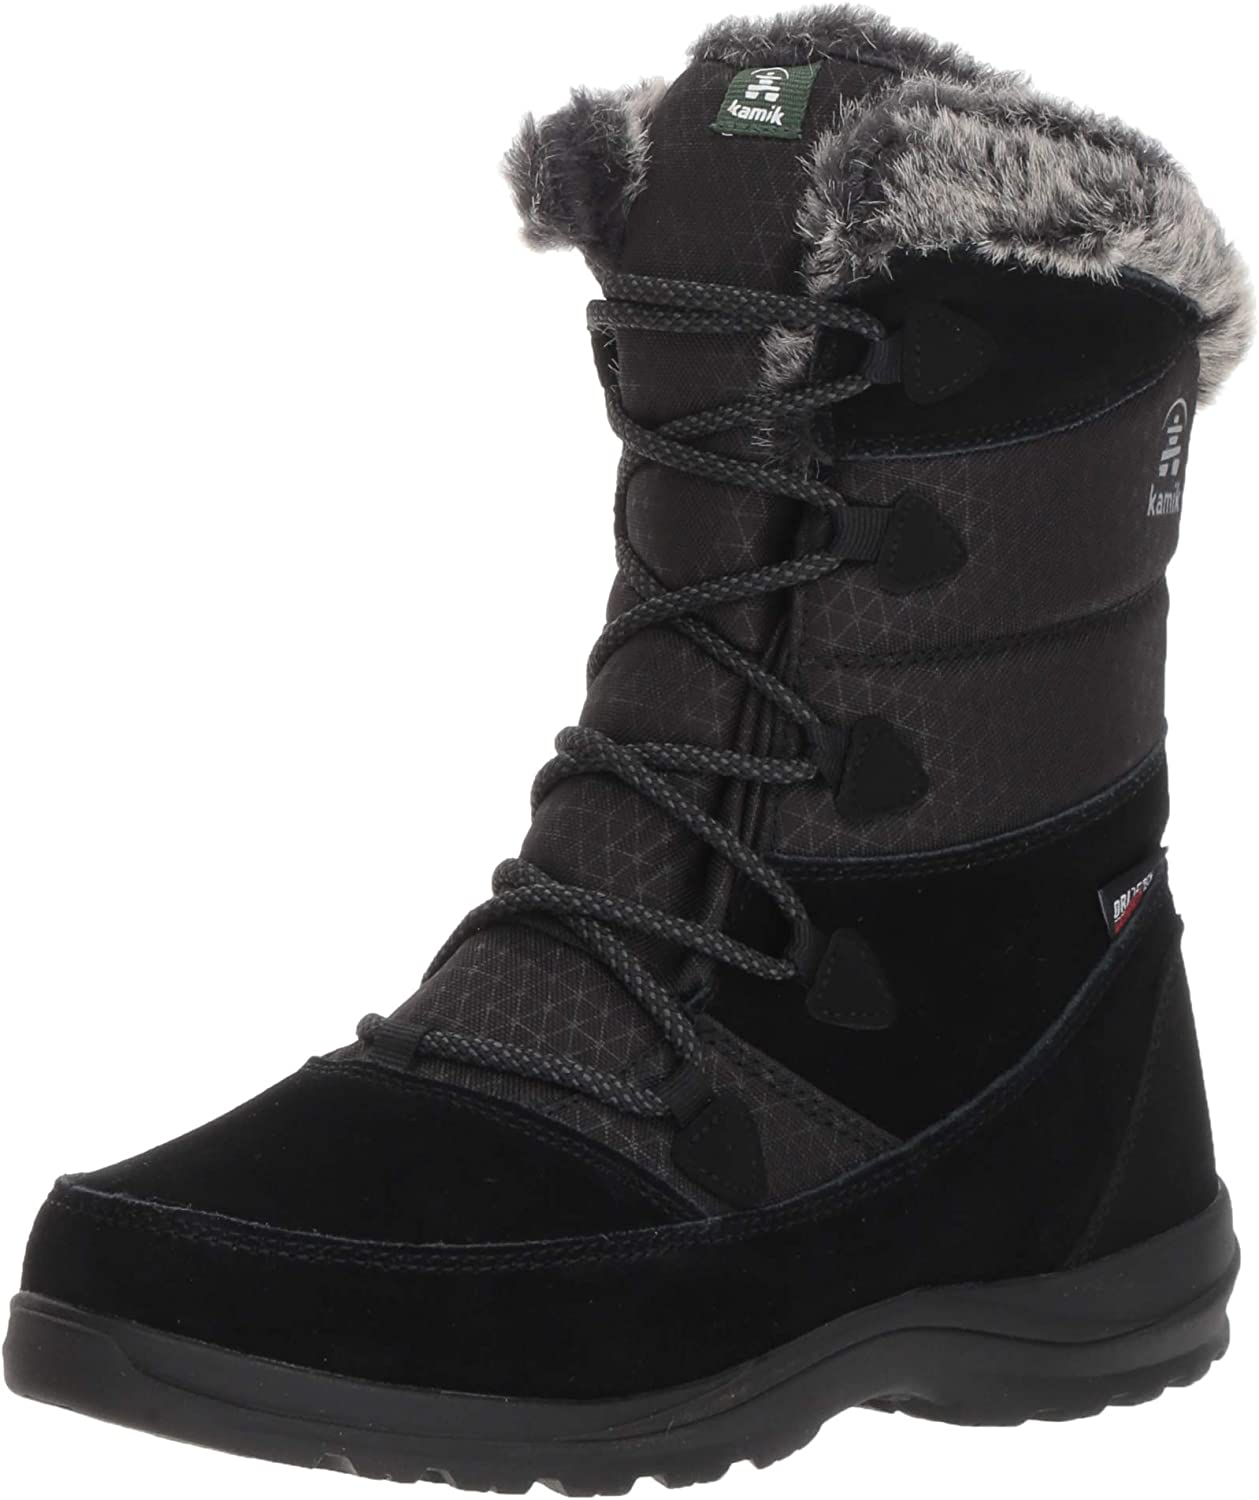 Kamik Womens Polarwide Snow Boot